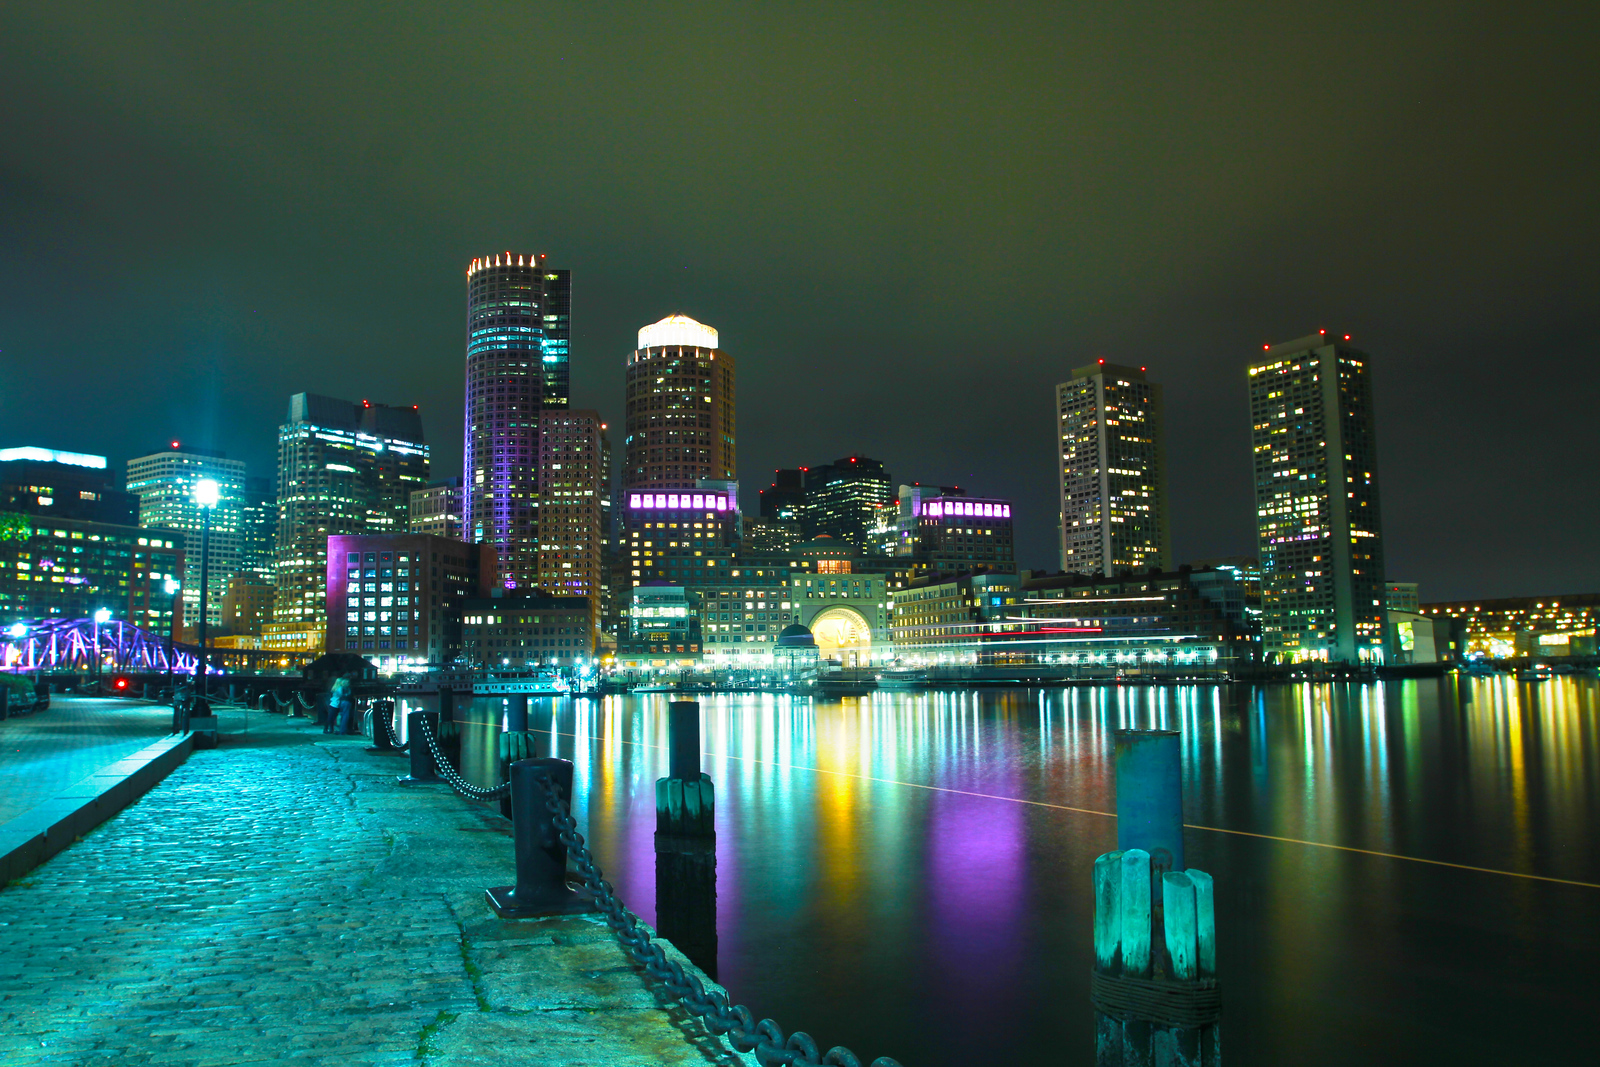 Boston skyline view from Fan Pier Park during a calm Fall evening on October 25, 2014. Photo by Bradley Rhoton.